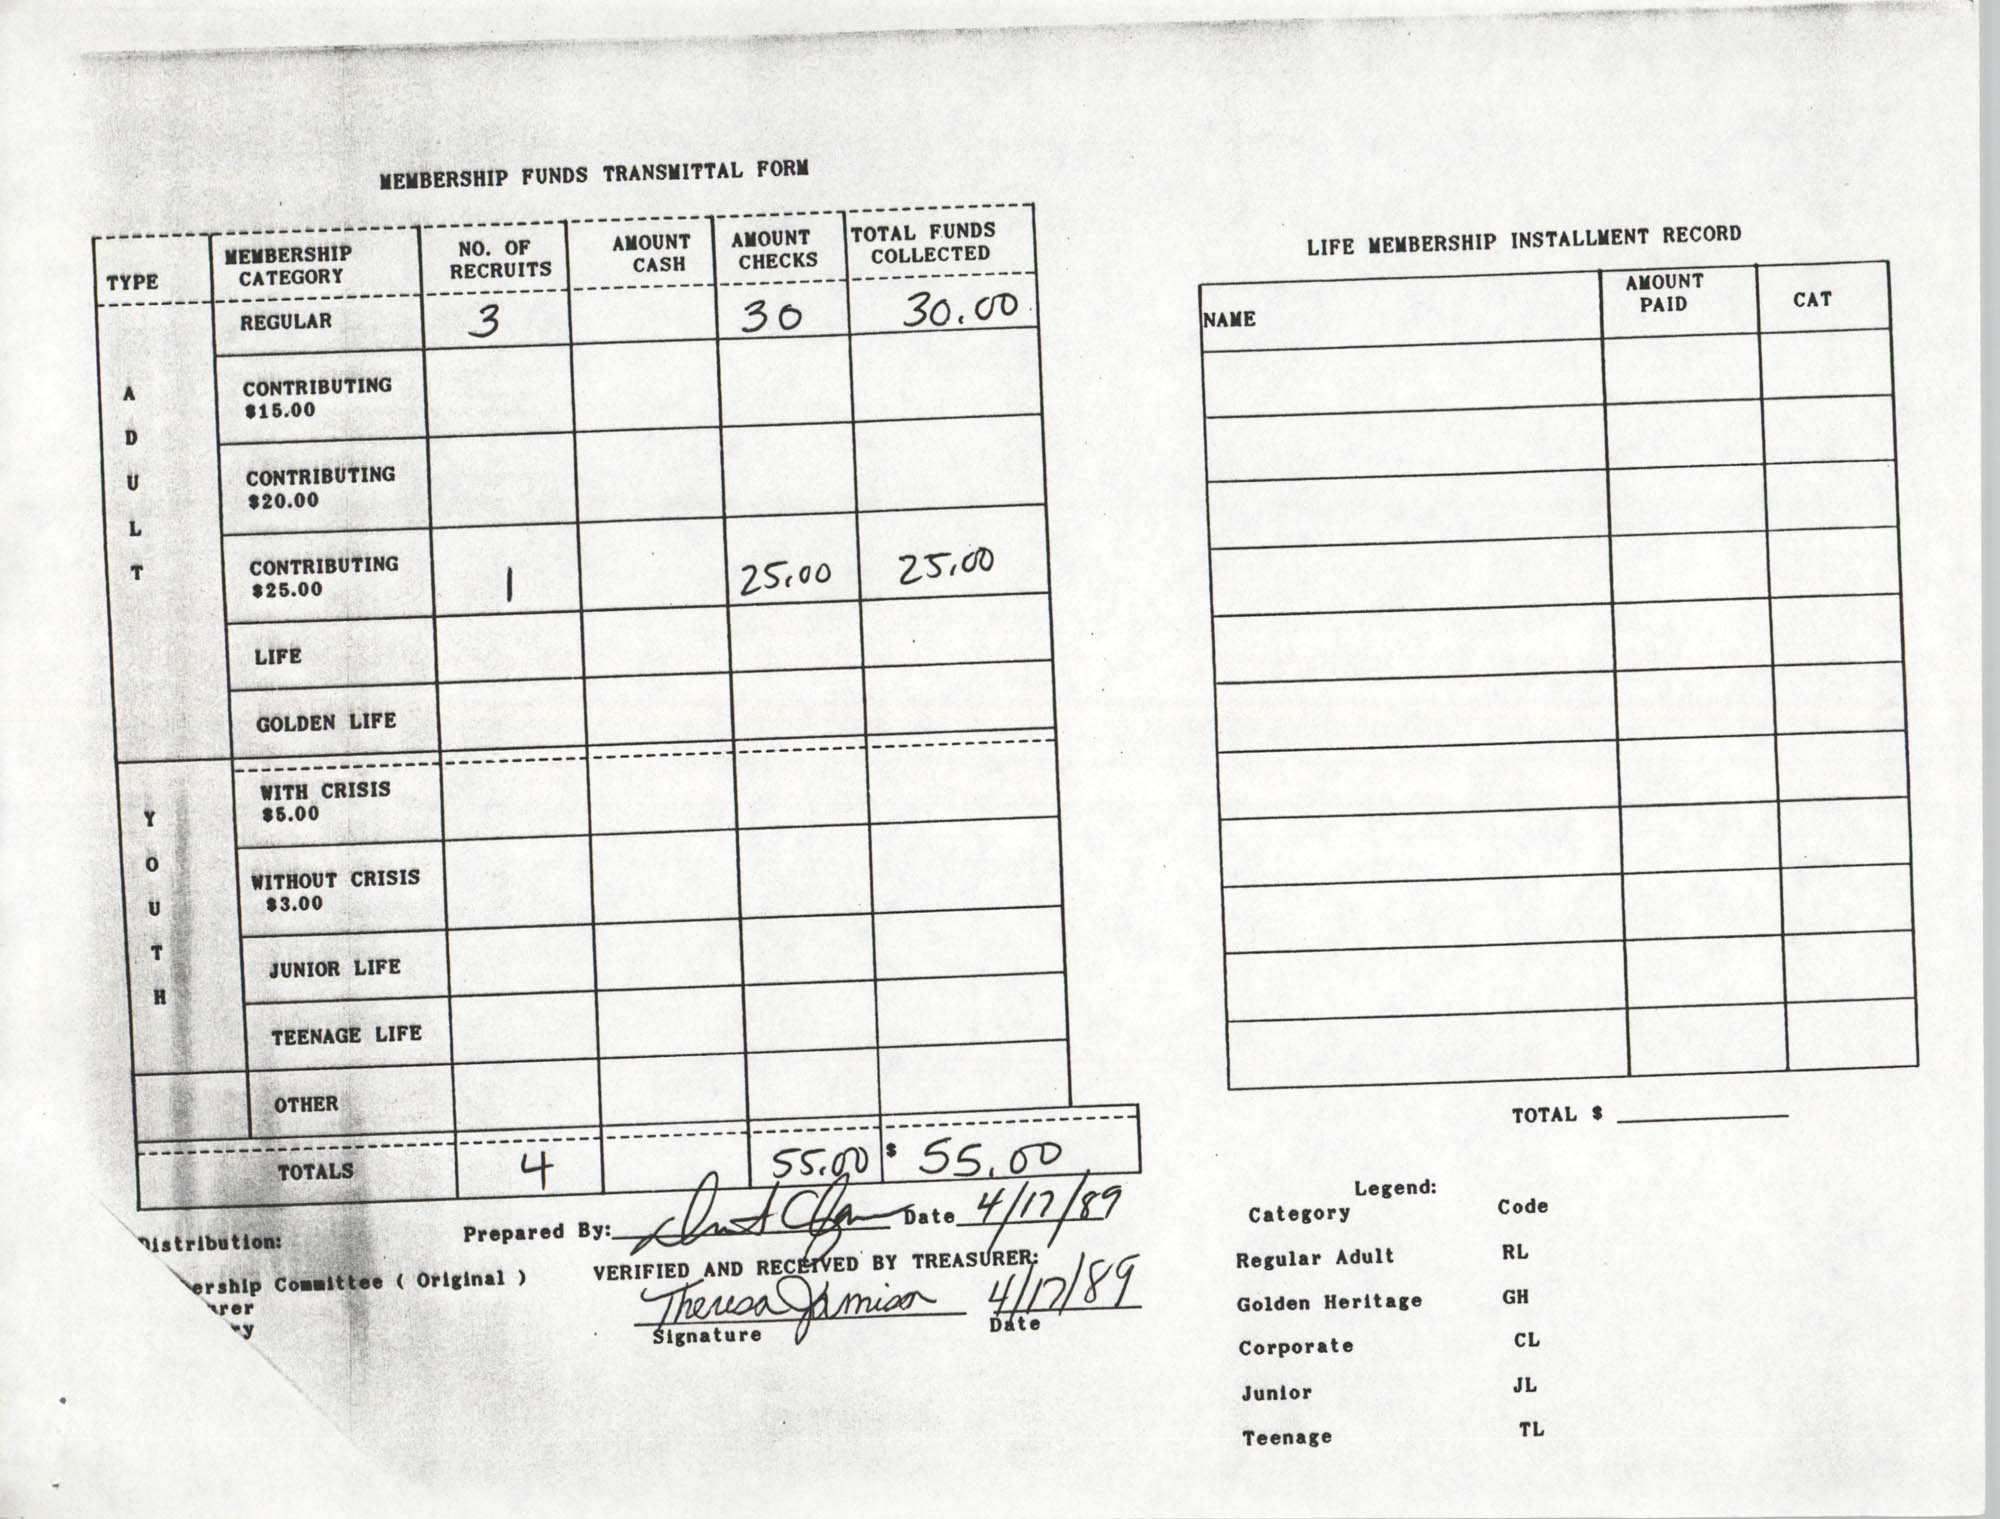 Charleston Branch of the NAACP Funds Transmittal Forms, April 1989, Page 4